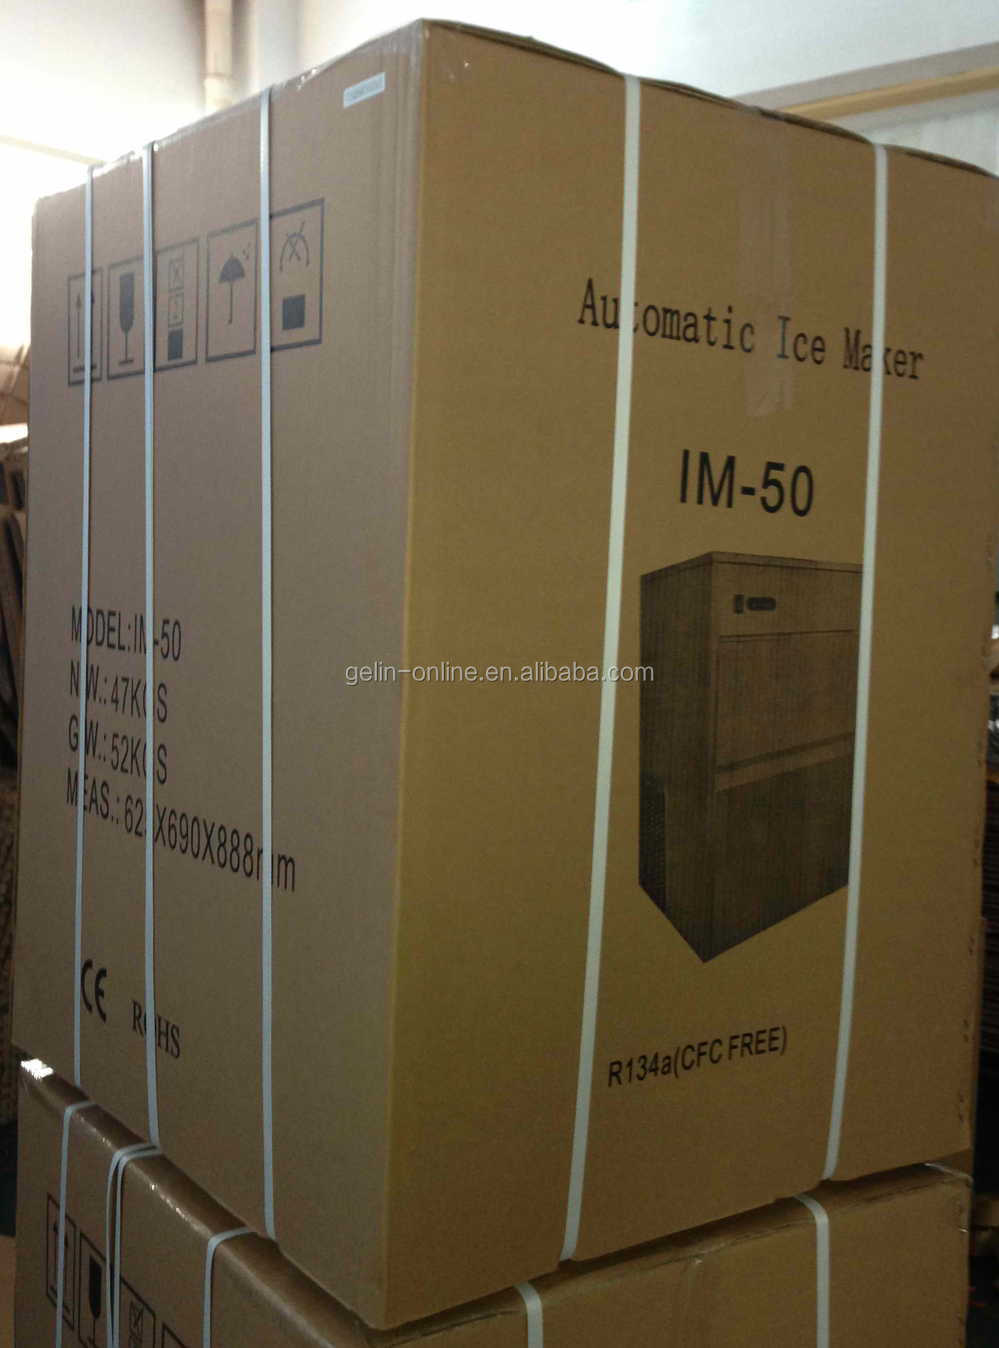 Bullet Ice Maker IM-50